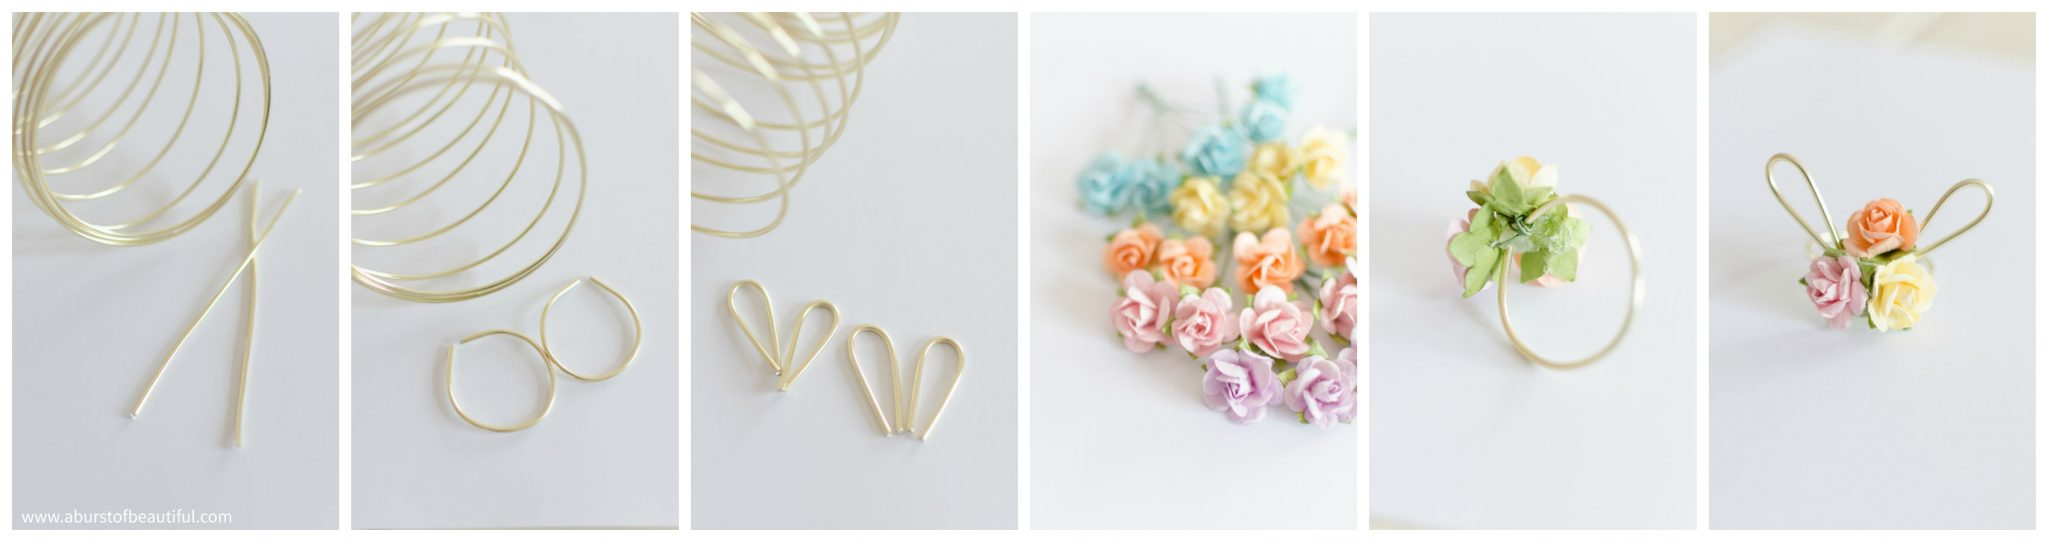 Easter Egg Decorating Idea   Decorate your Easter eggs this holiday with these miniature DIY gold wire bunny ears and floral crowns for a sweet and whimsical touch.